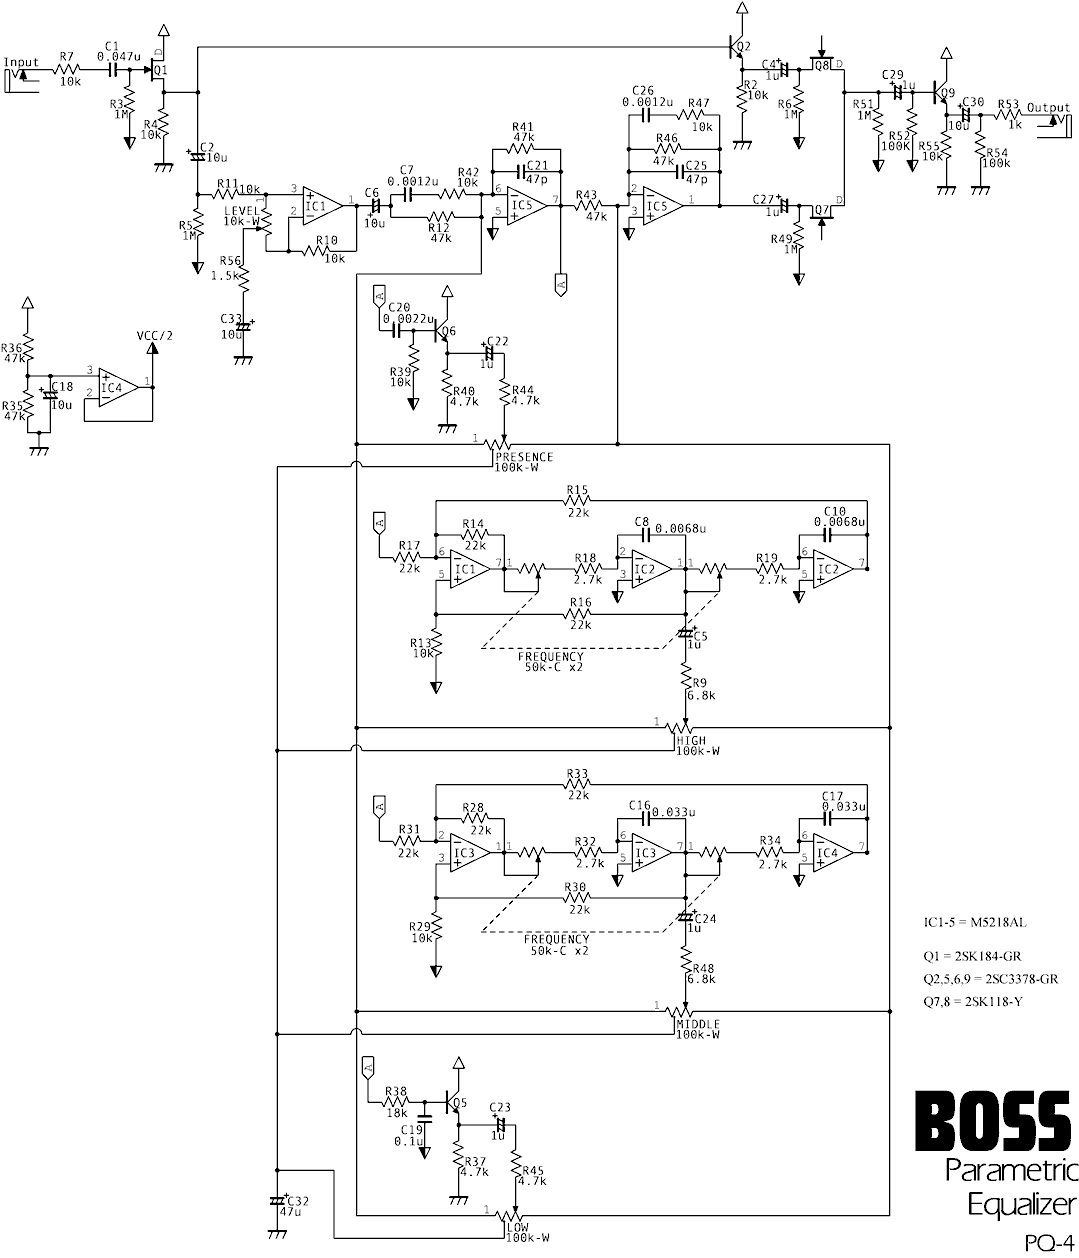 boss pq 4 parametric equalizer schematic needed. Black Bedroom Furniture Sets. Home Design Ideas